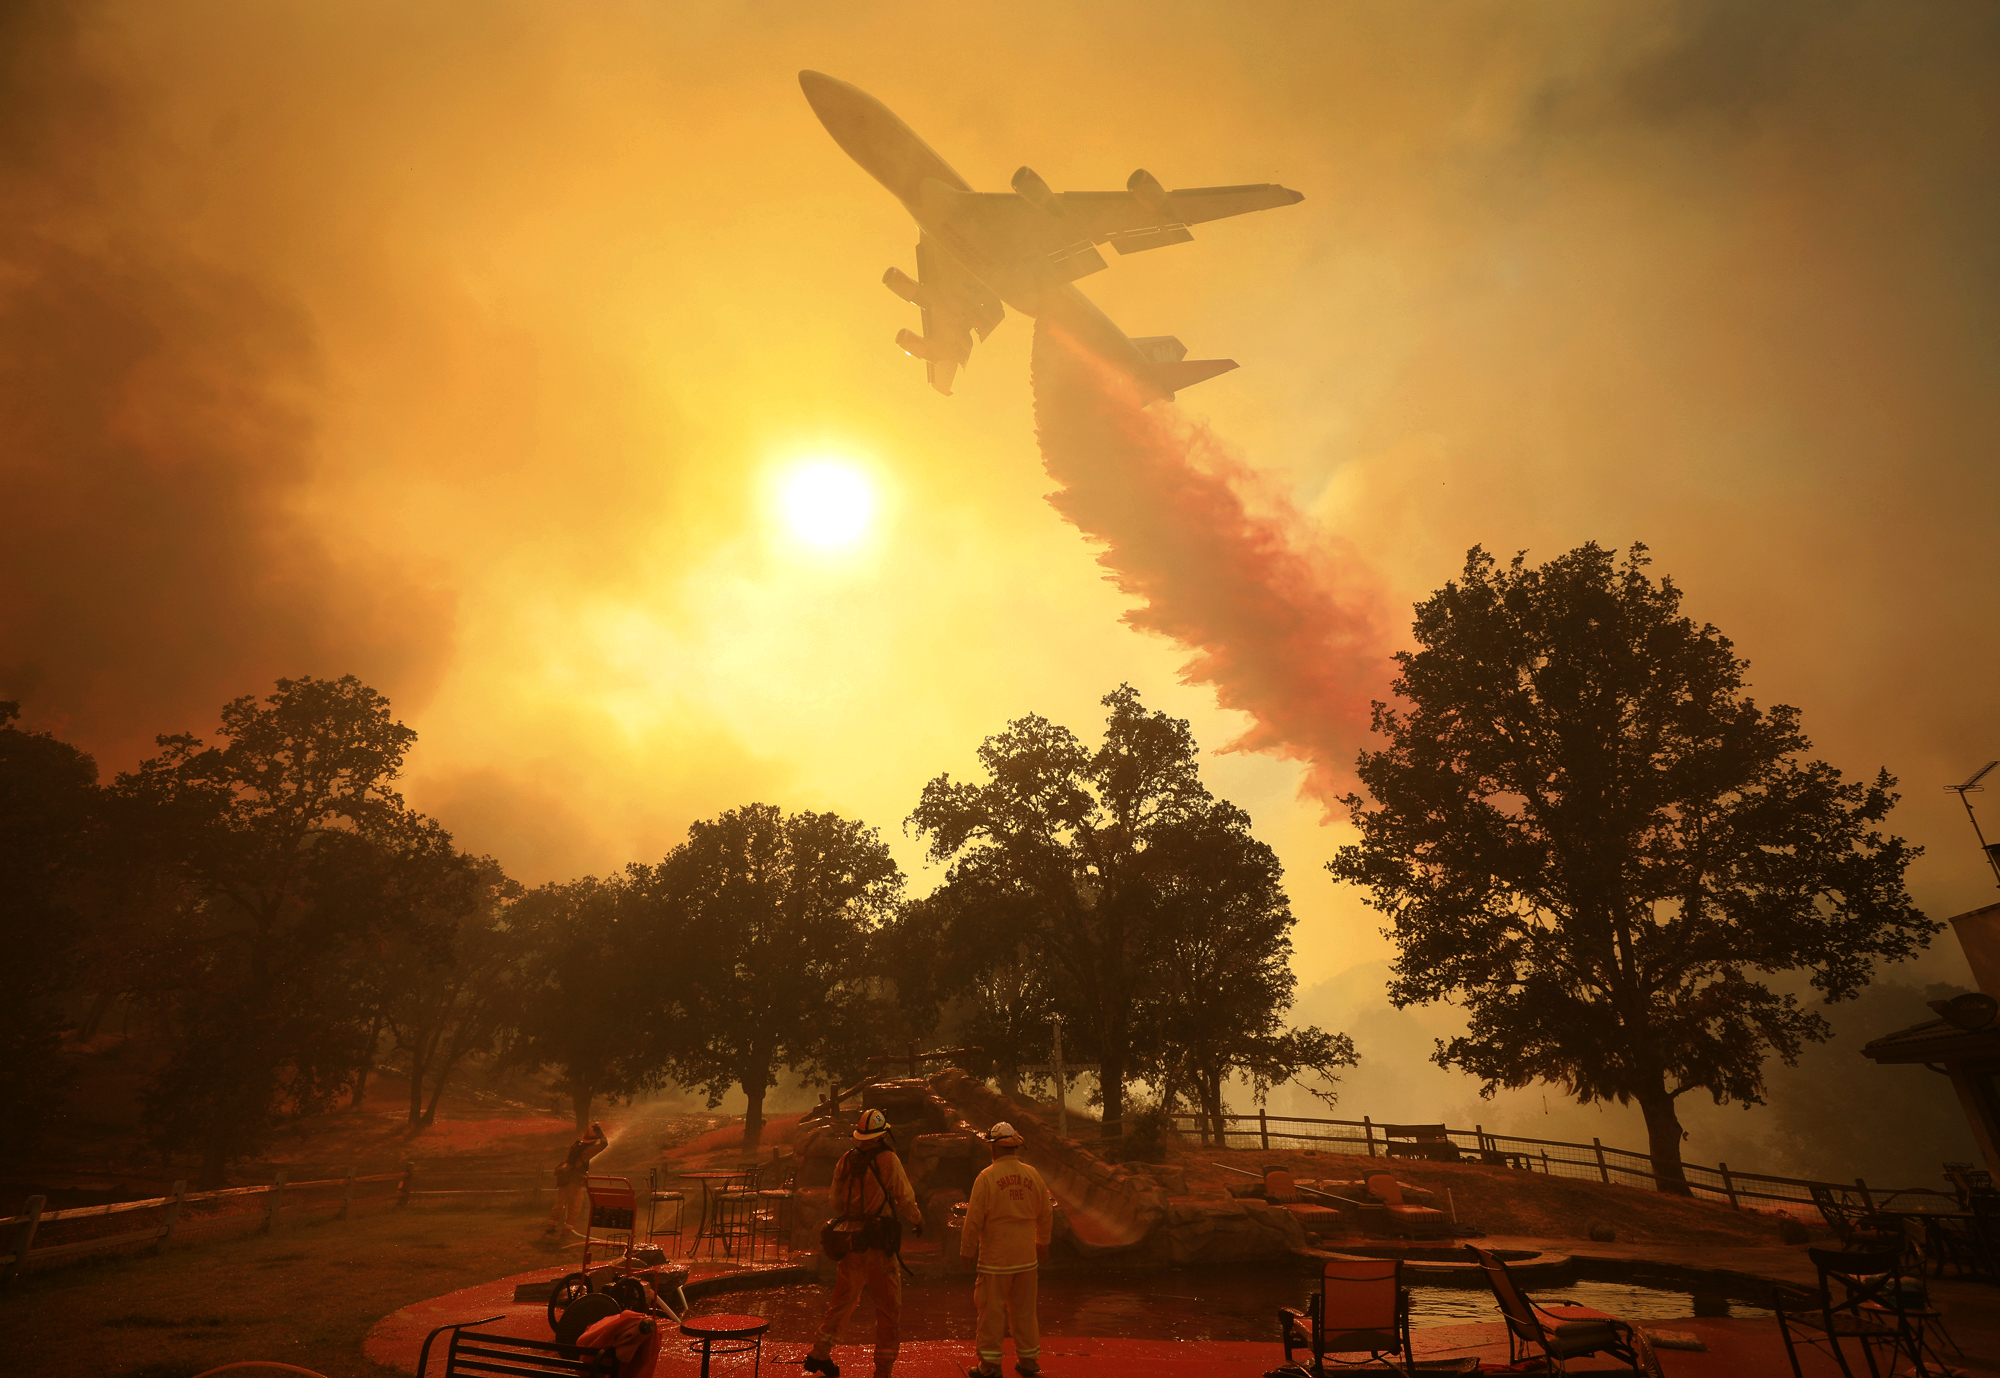 APTOPIX_California_Wildfires_62512-159532.jpg66471435